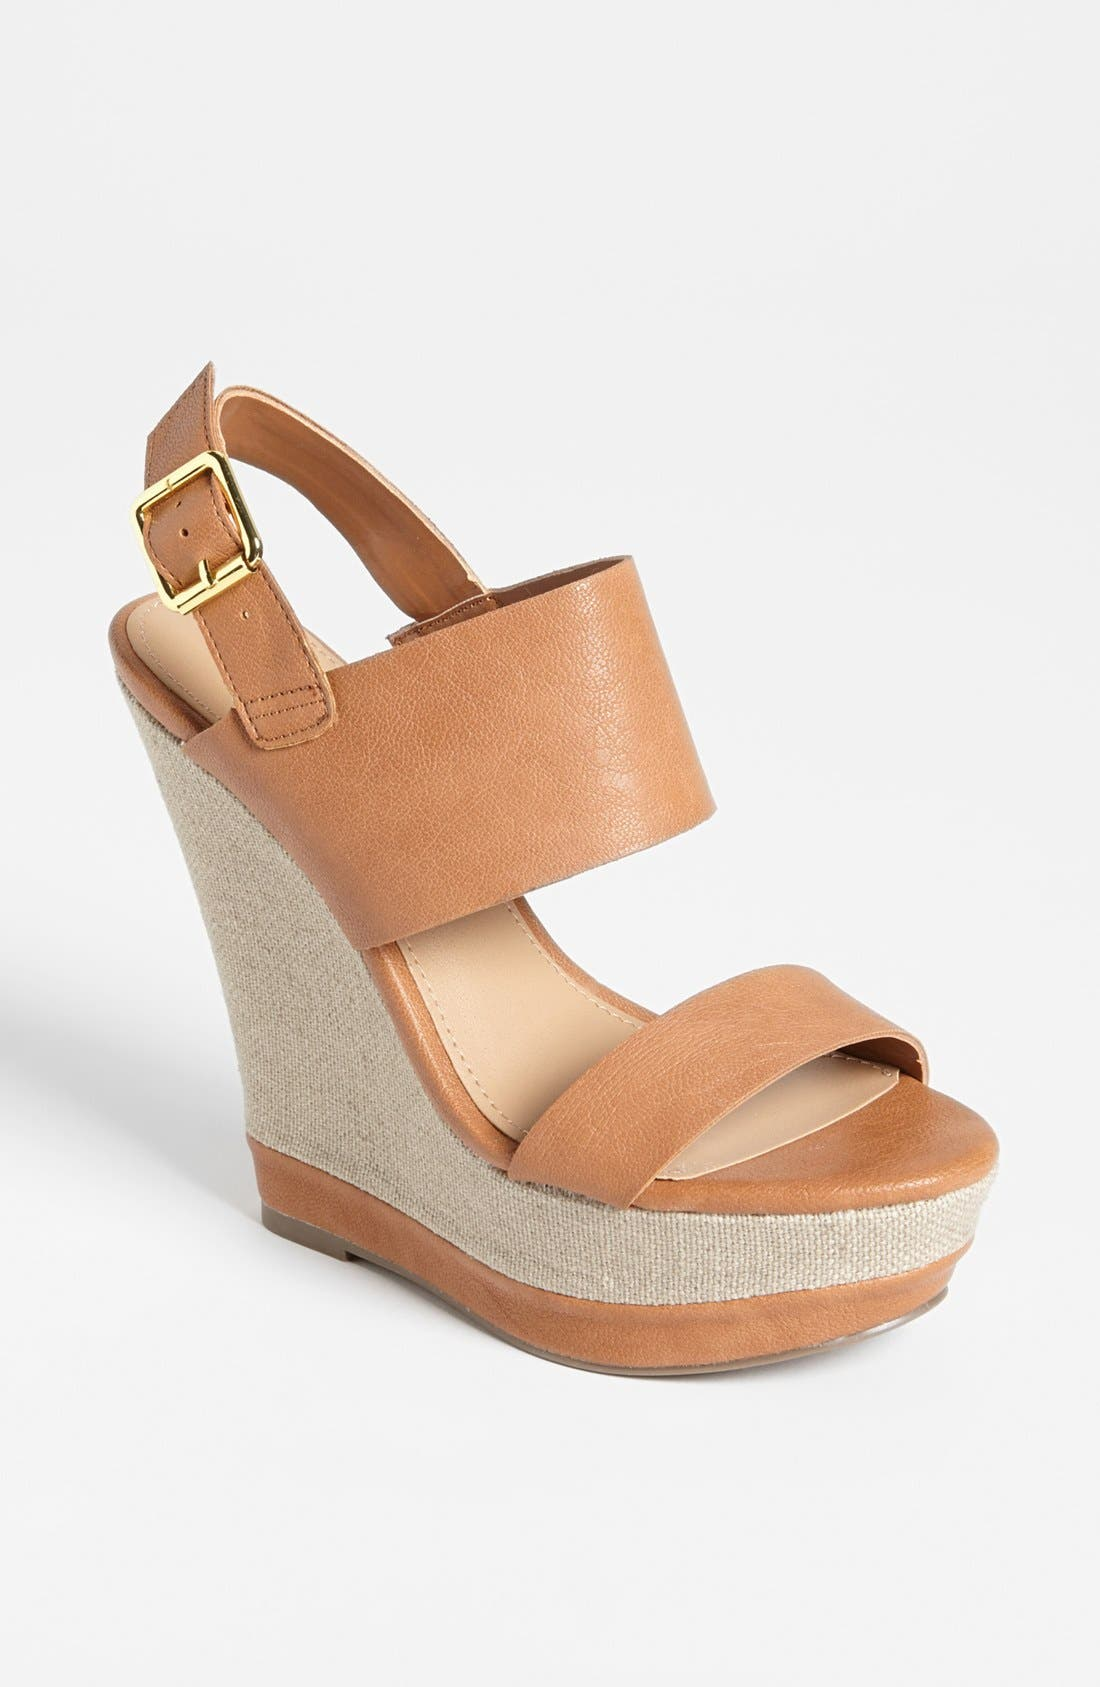 Alternate Image 1 Selected - Steve Madden 'Warmthh' Wedge Sandal